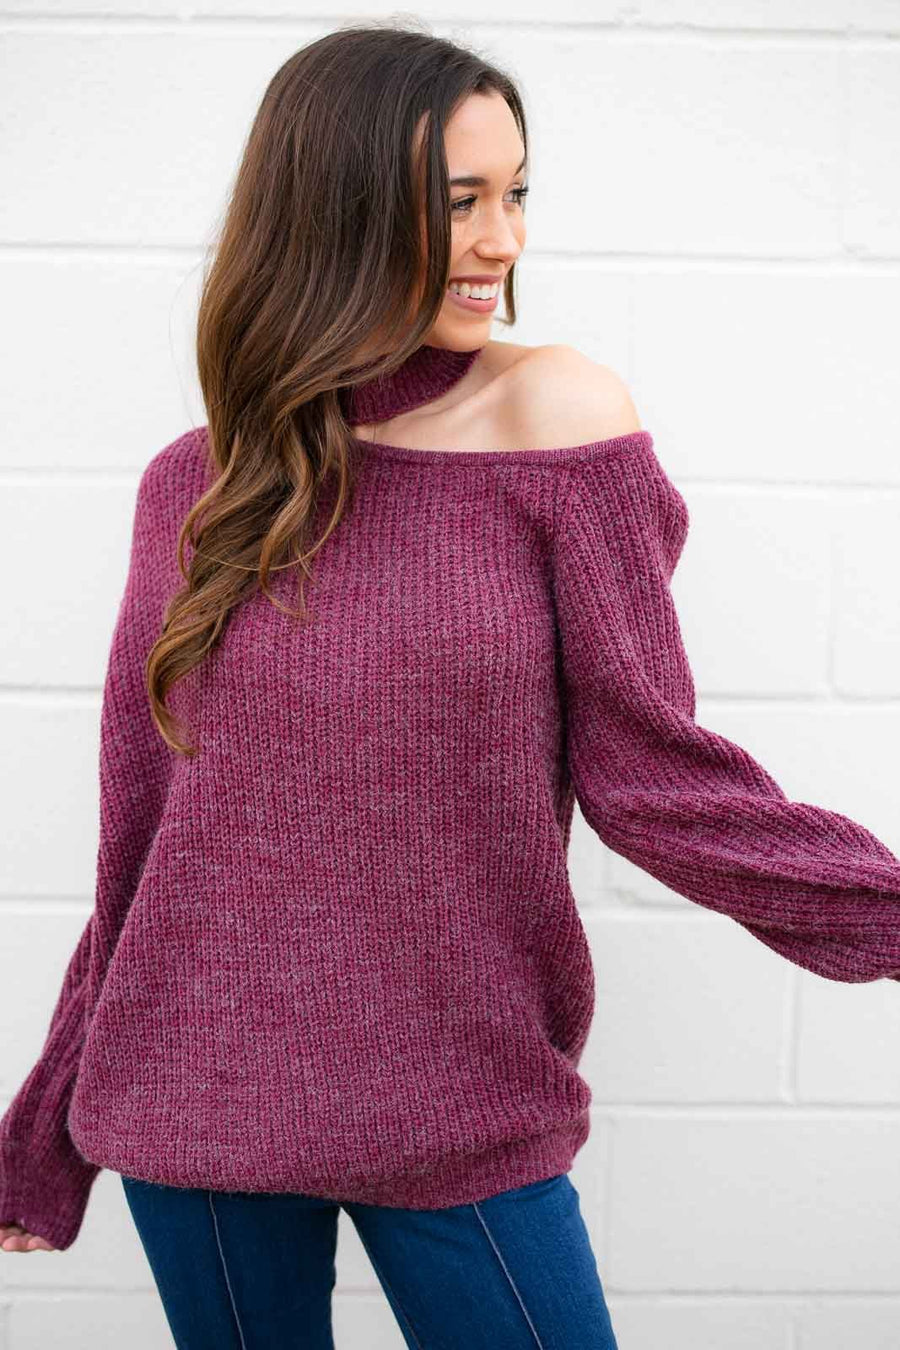 Luci Cut Out Grape Sweater